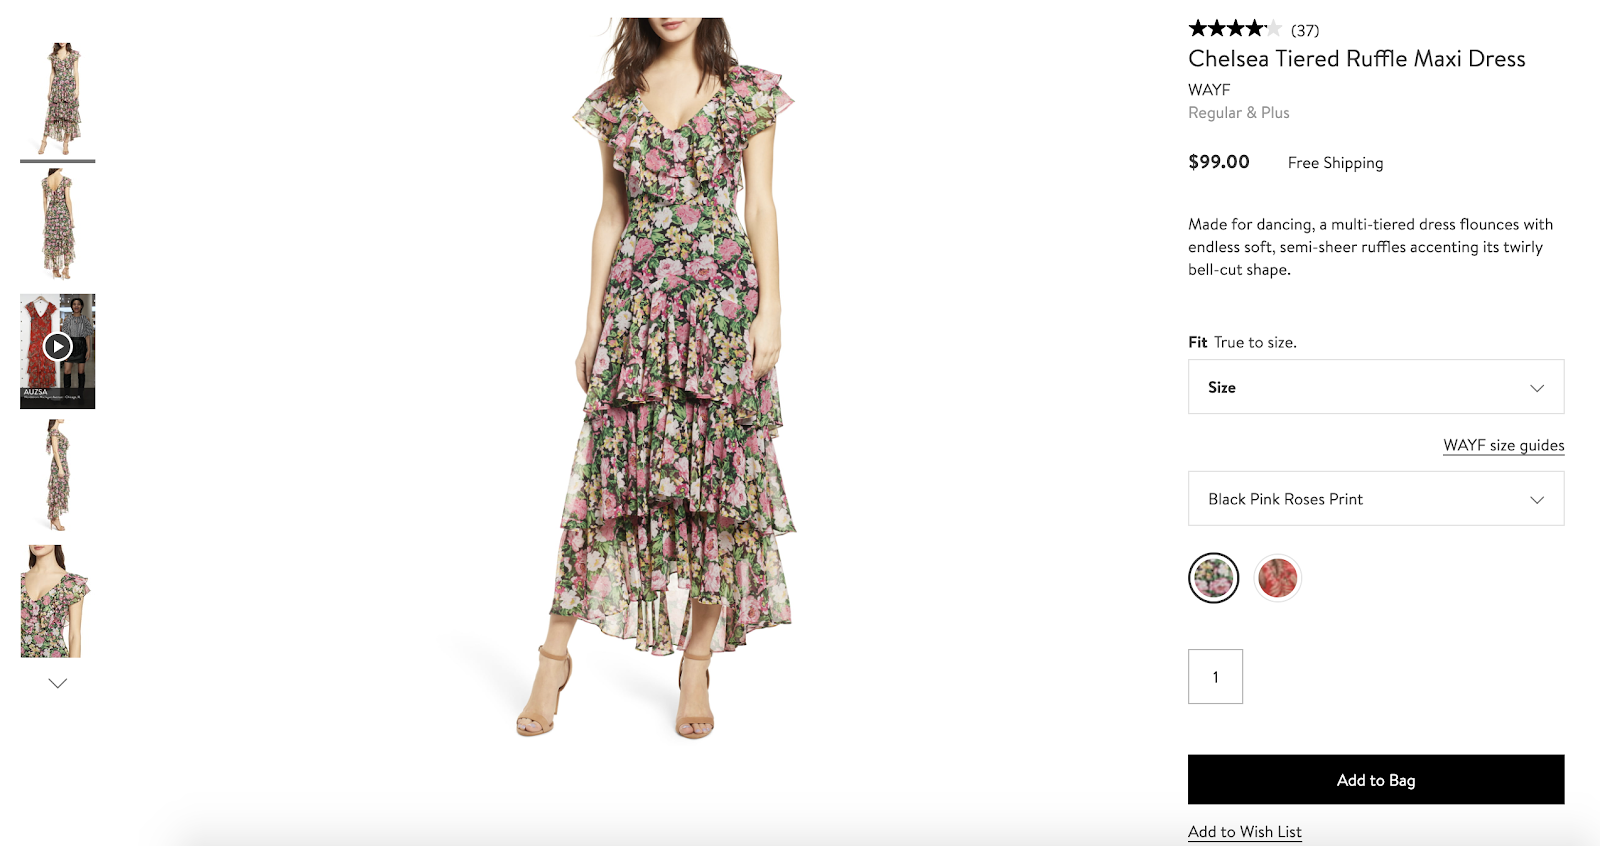 product page optimization nordstrom